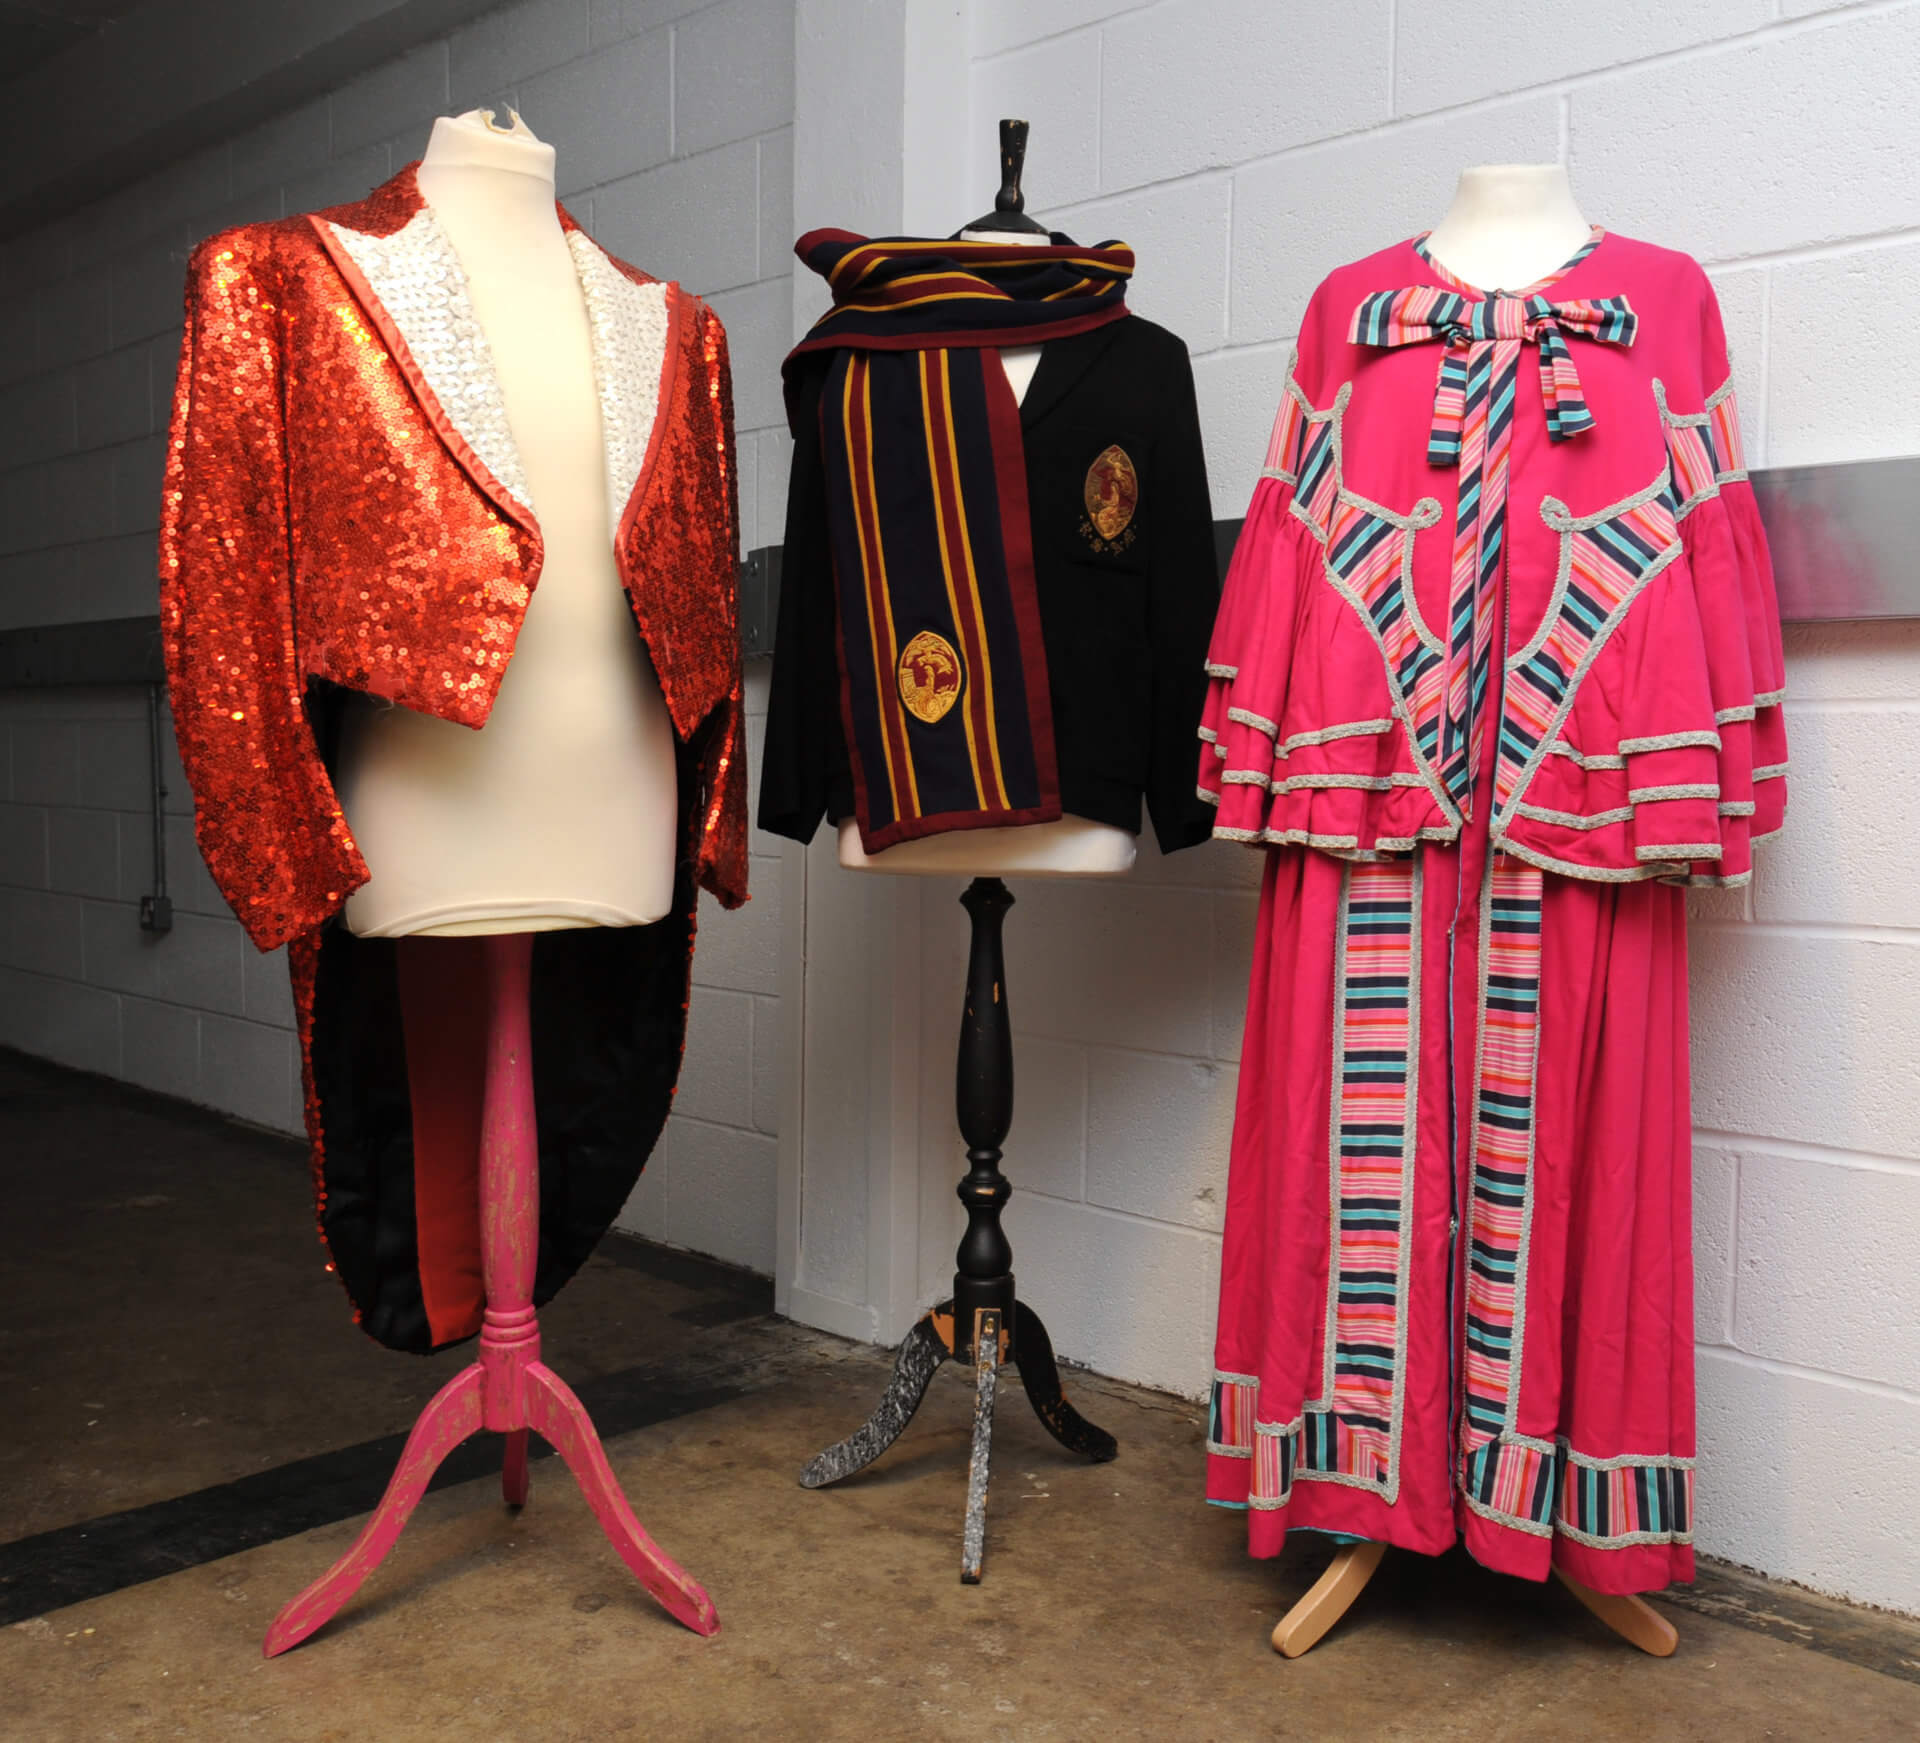 Costumes worn by Scottish entertainer Jimmy Logan are displayed on  mannequins in the RCS archive - a red sequin tailcoat and a pink pantomime dame dress. In the middle is a blazer worn by RCS music students in the 1950s.